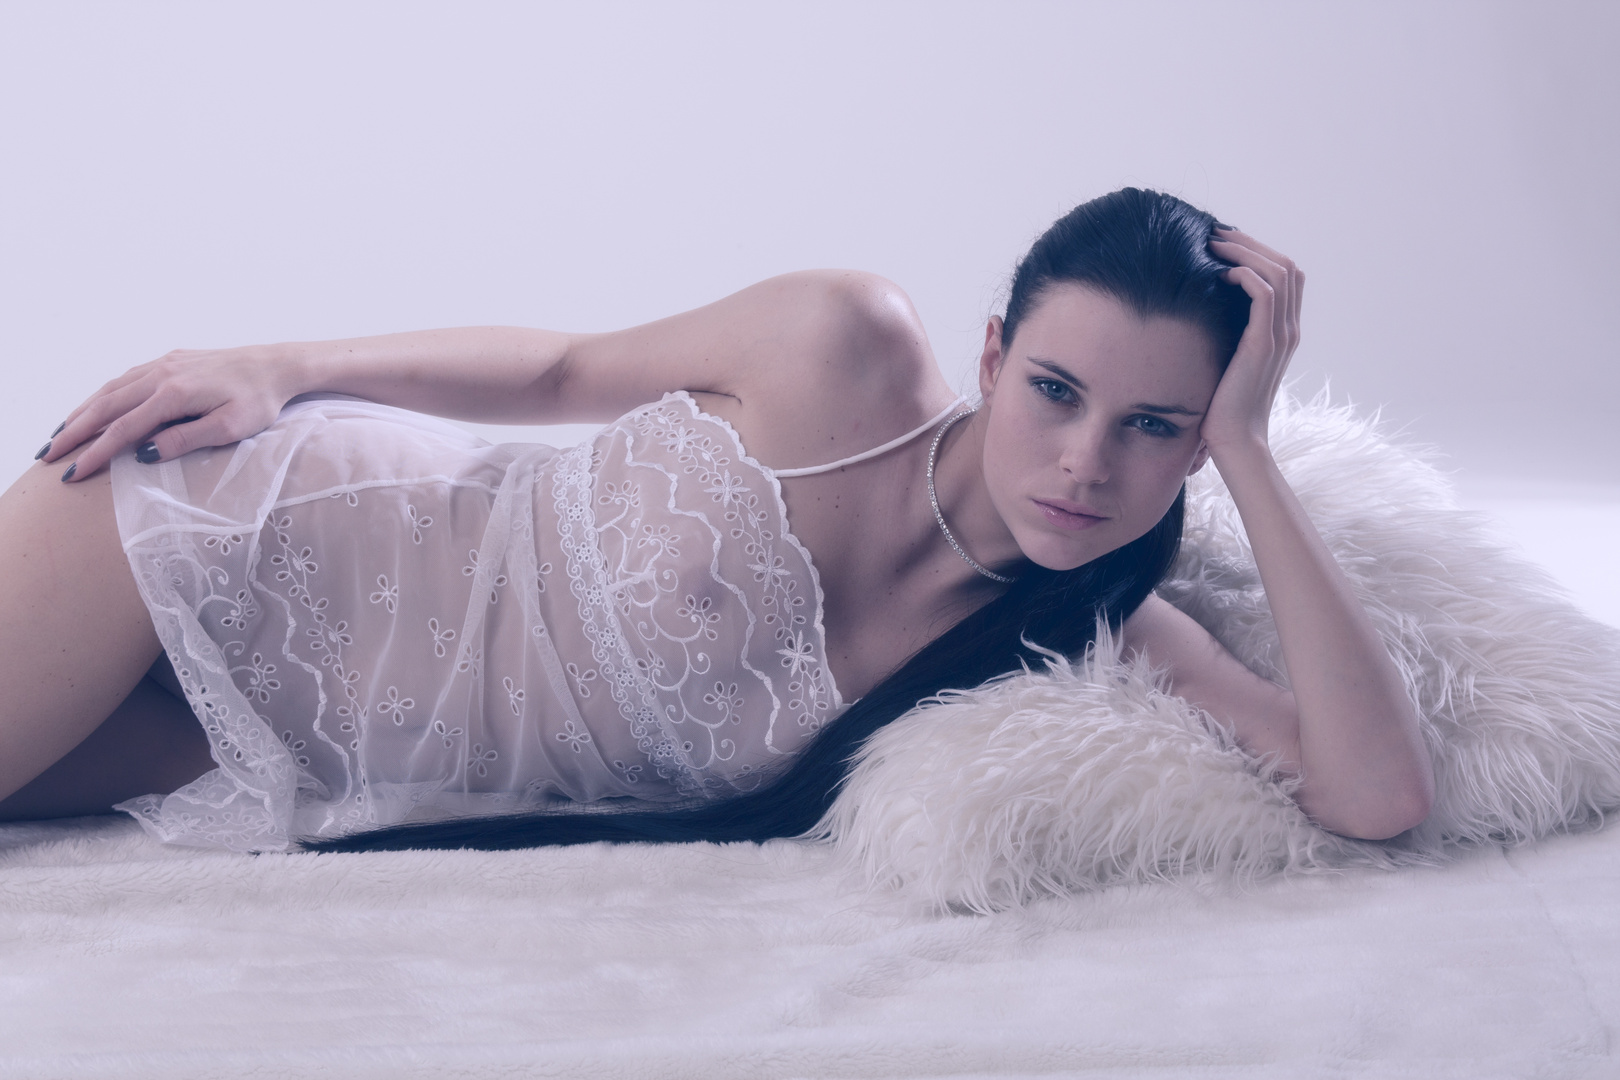 Aleksa in Negligee